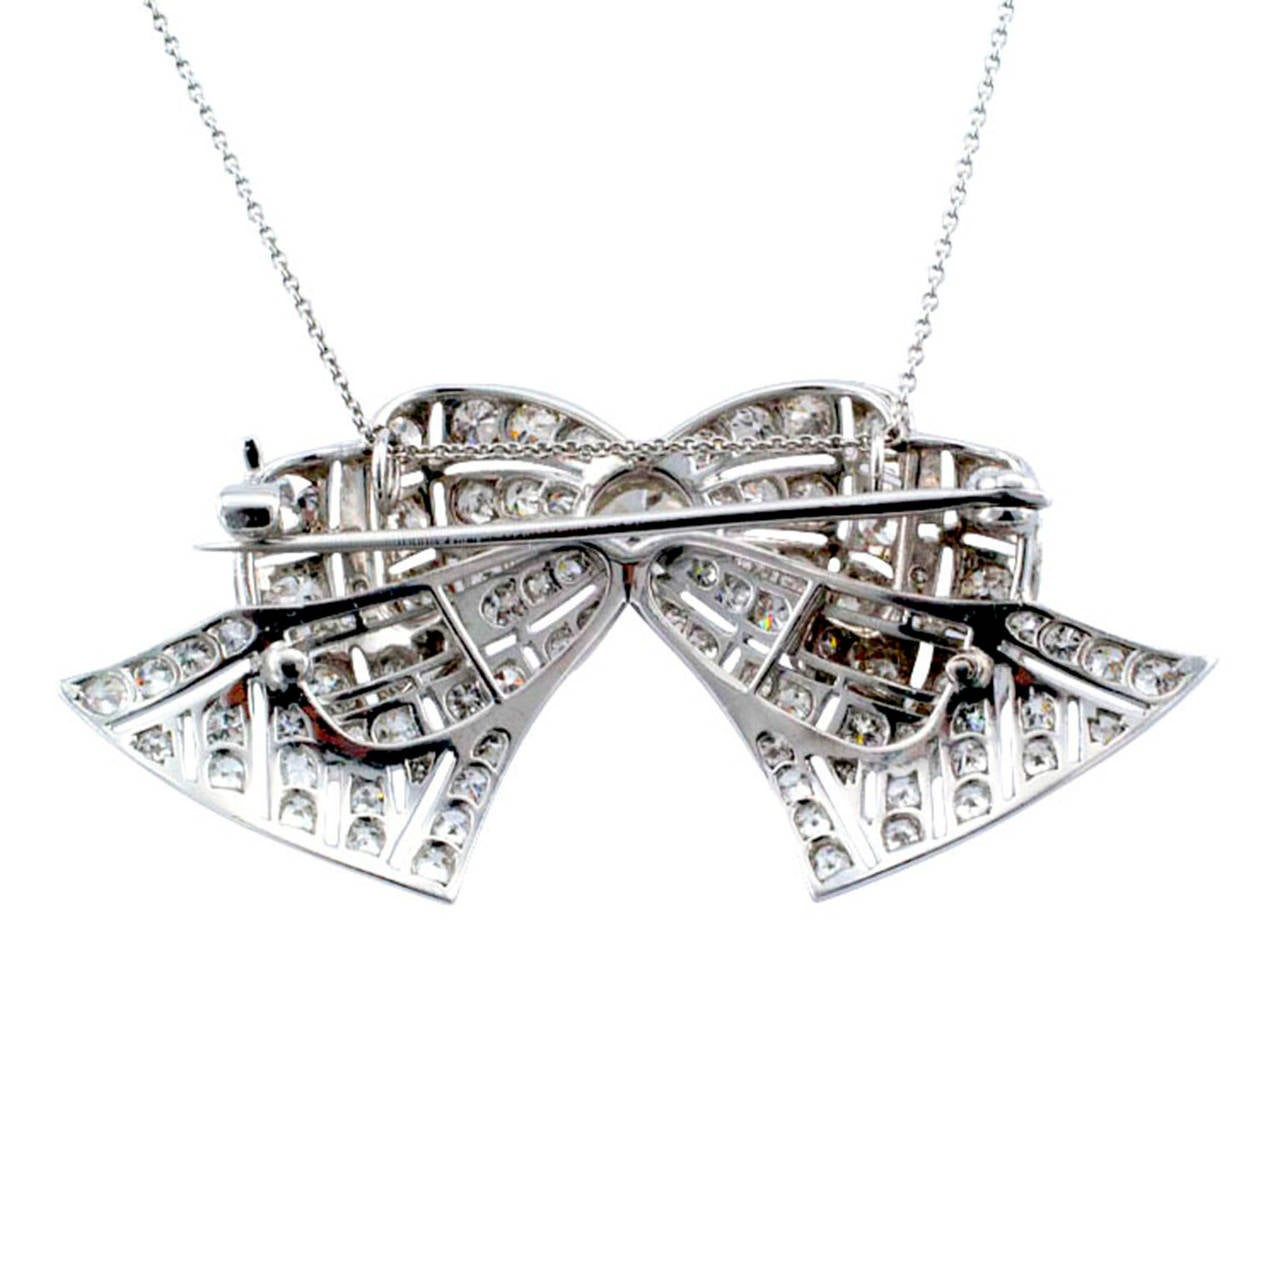 Art Deco Diamond Platinum Bow Brooch Pendant In Excellent Condition For Sale In Los Angeles, CA